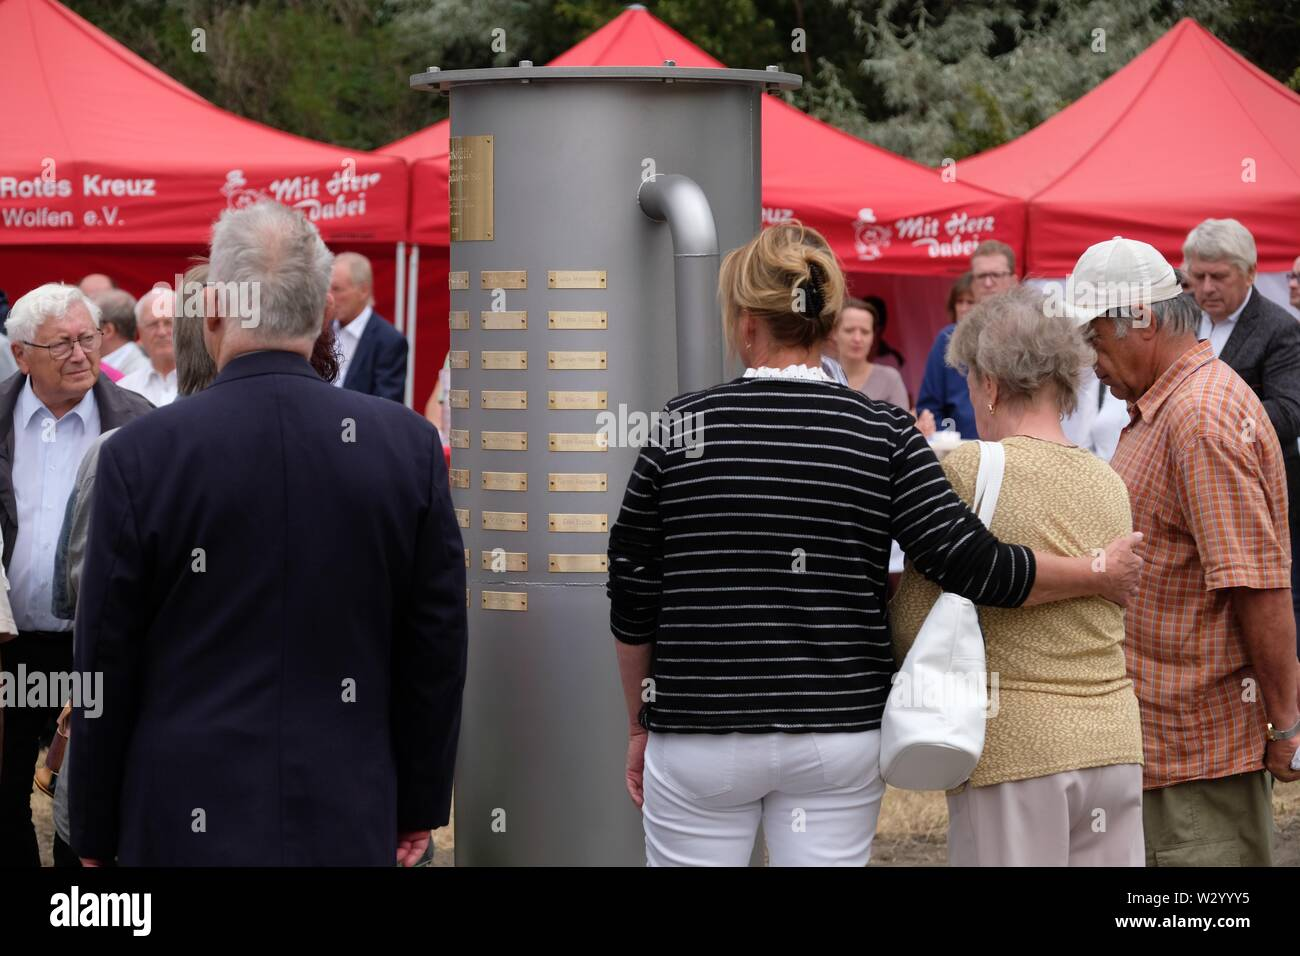 11 July 2019, Saxony-Anhalt, Bitterfeld-Wolfen: Participants in a commemoration ceremony stand at a monument in the Chemical Park. A stele commemorates the victims of the chemical accident of 11.07.1968, when 42 people died and more than 270 were injured. Photo: Sebastian Willnow/dpa-Zentralbild/dpa - Stock Image